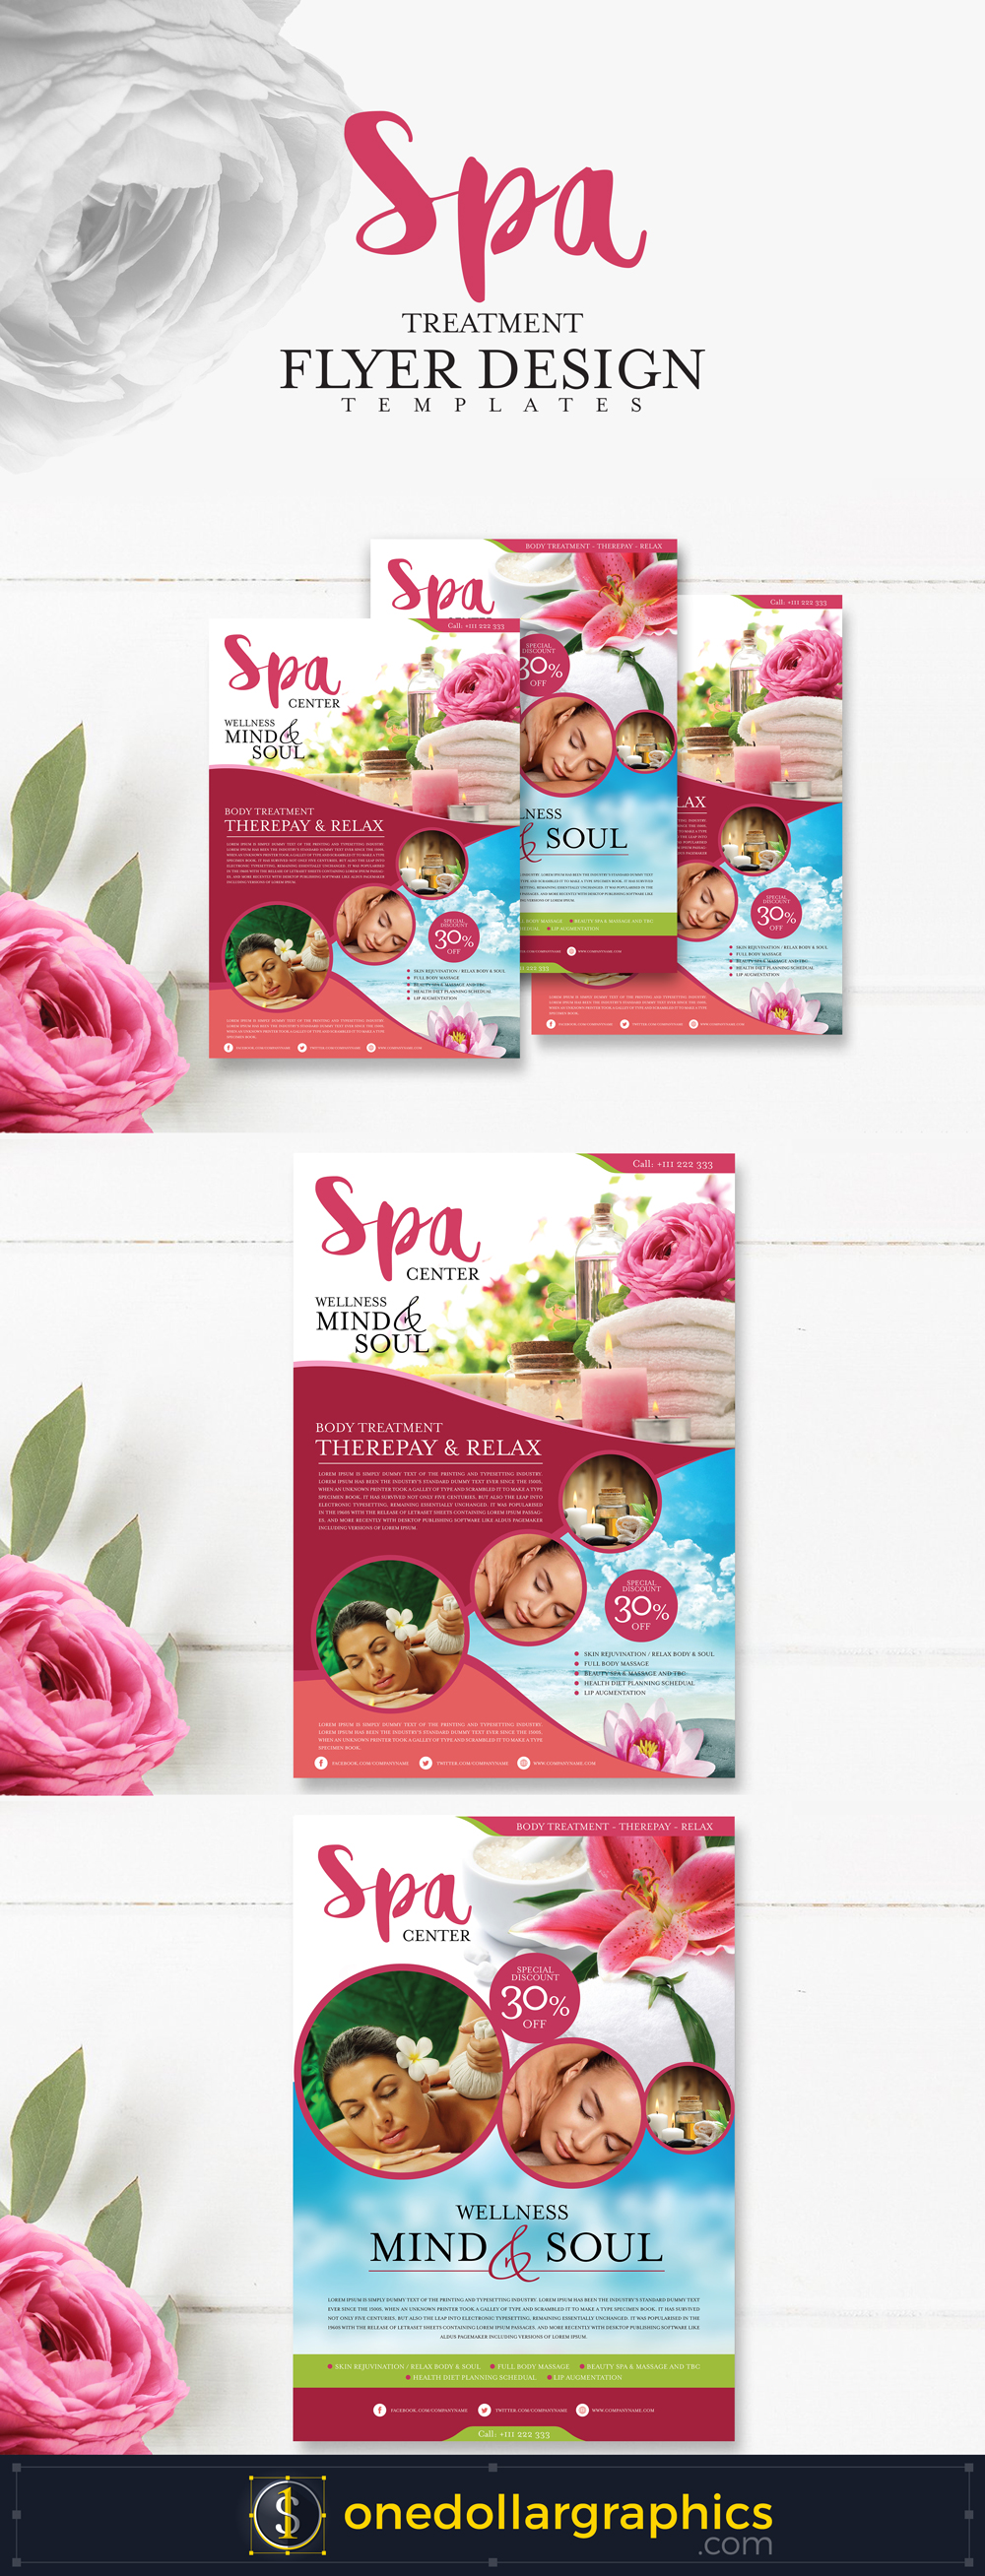 Spa-Treatment-Flyer-Design-Templates